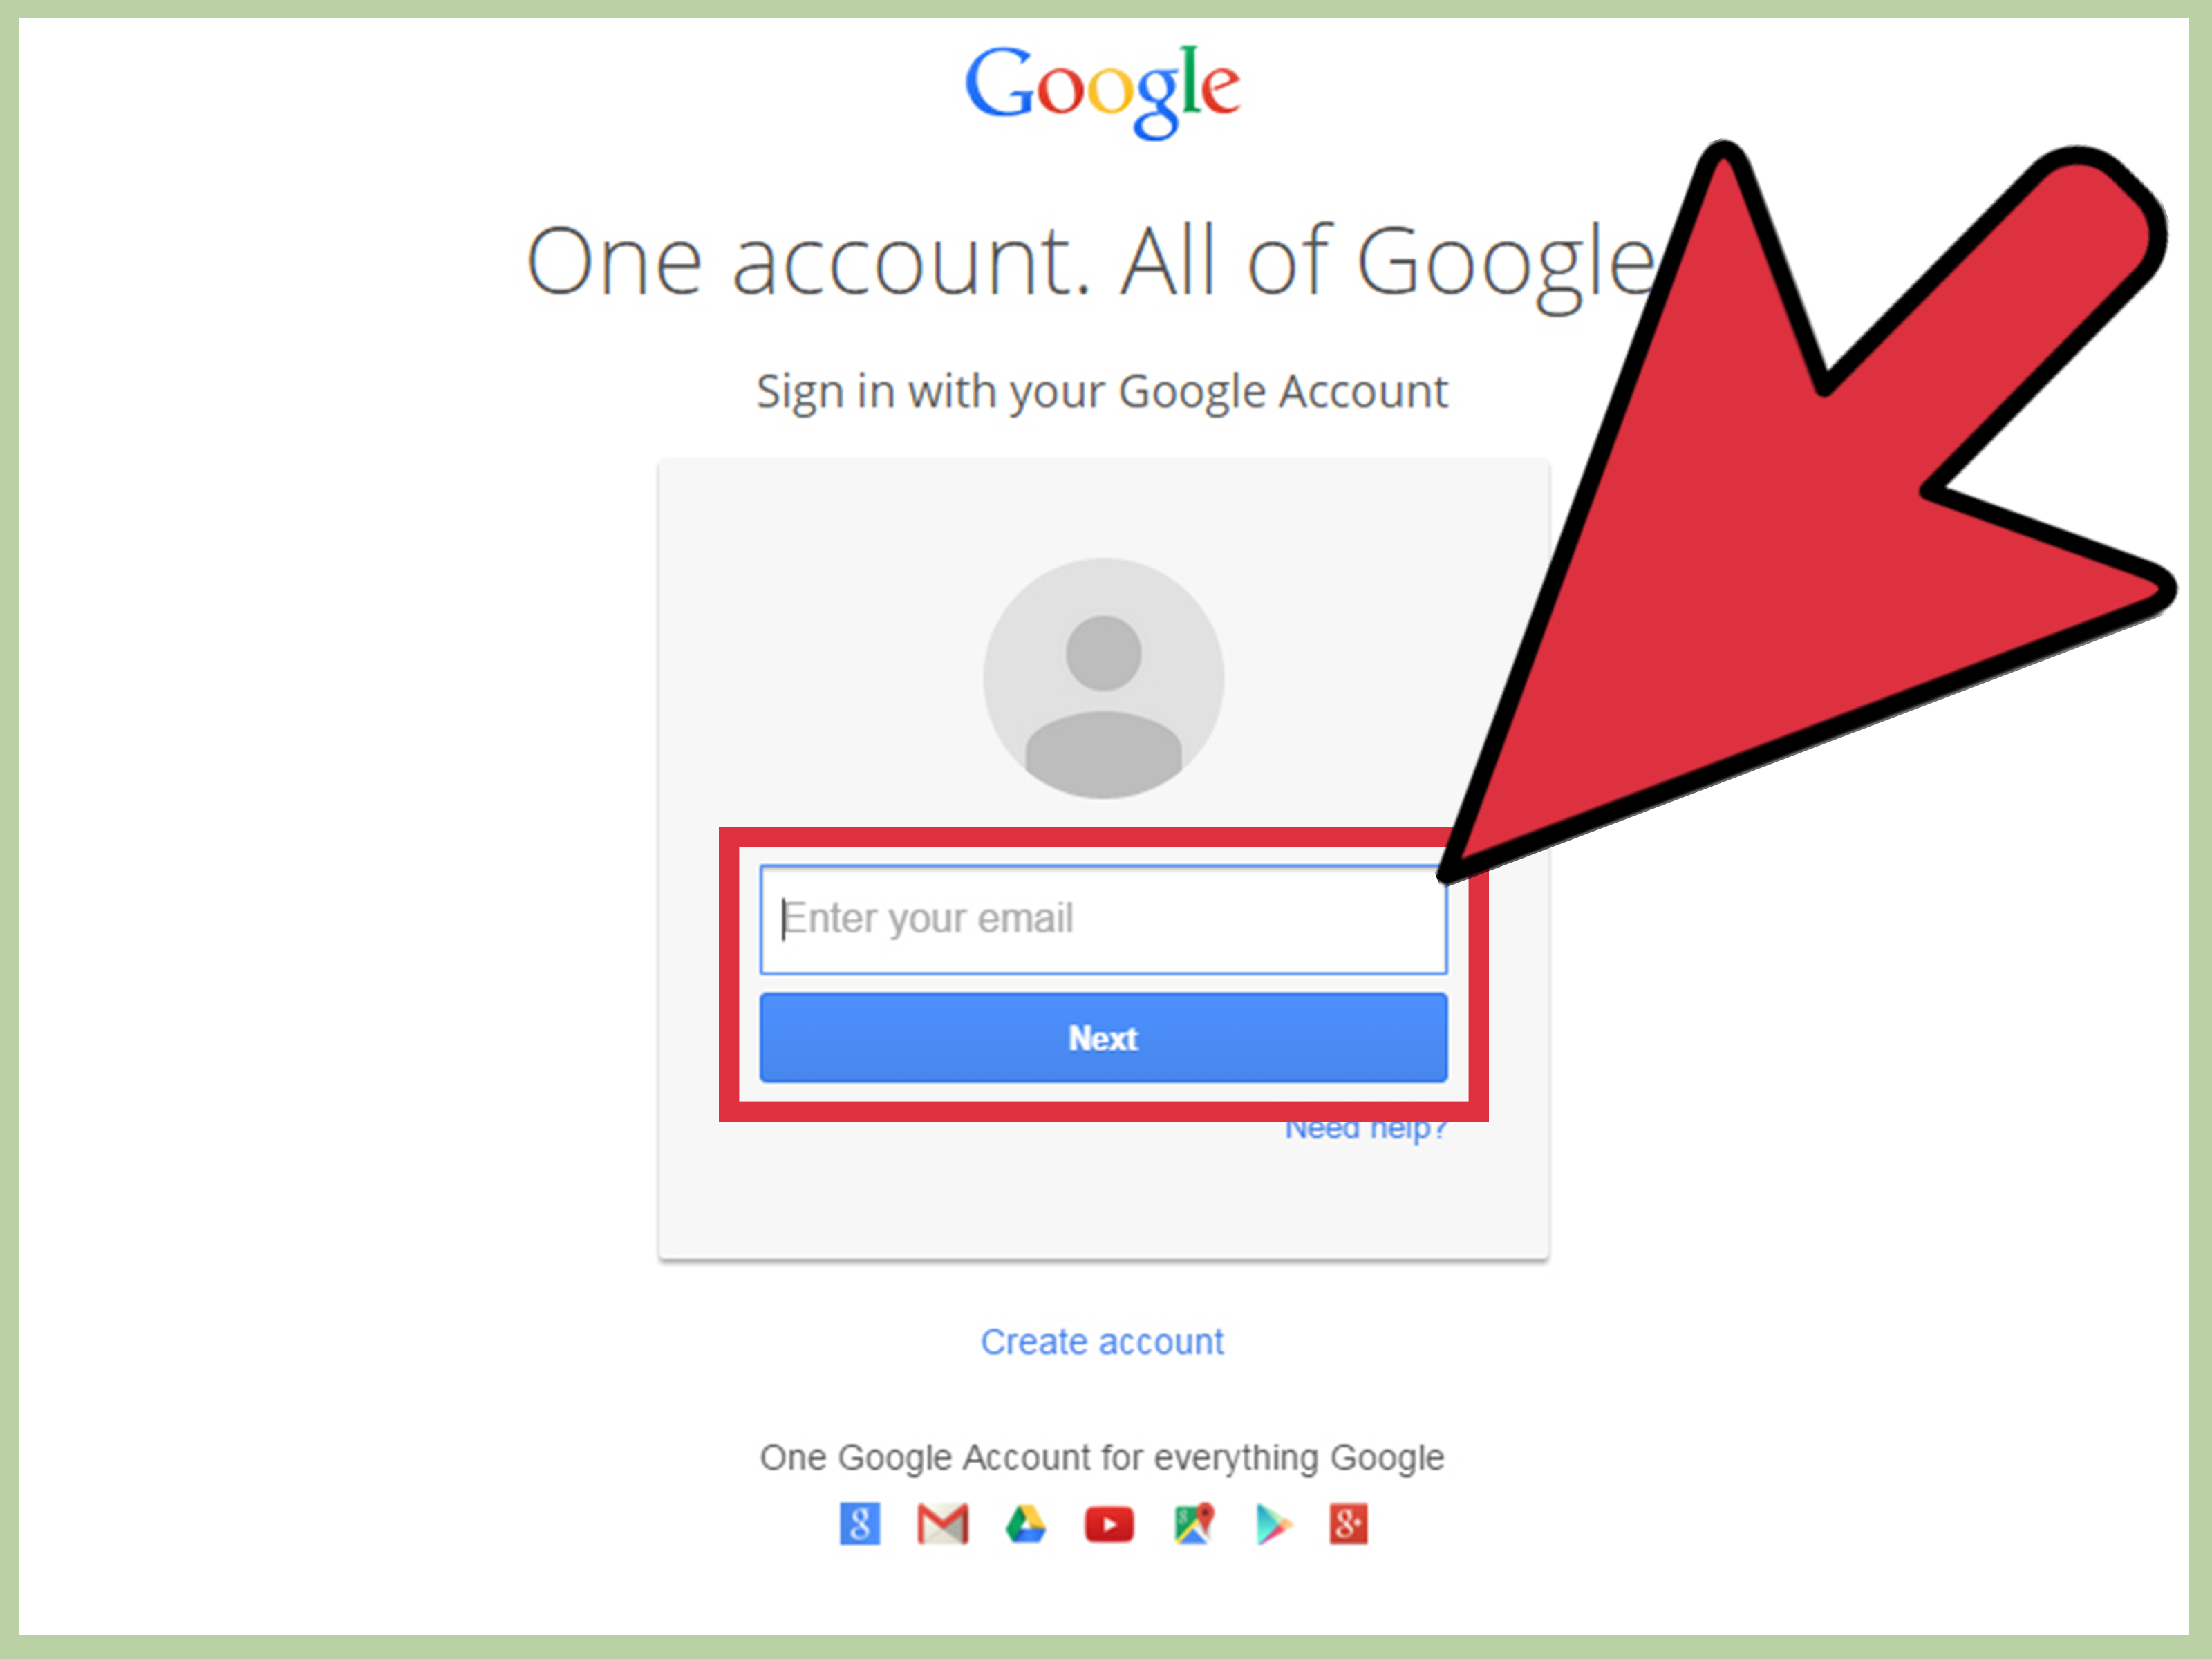 An image directing users on how to login to their Gmail to leave a review.